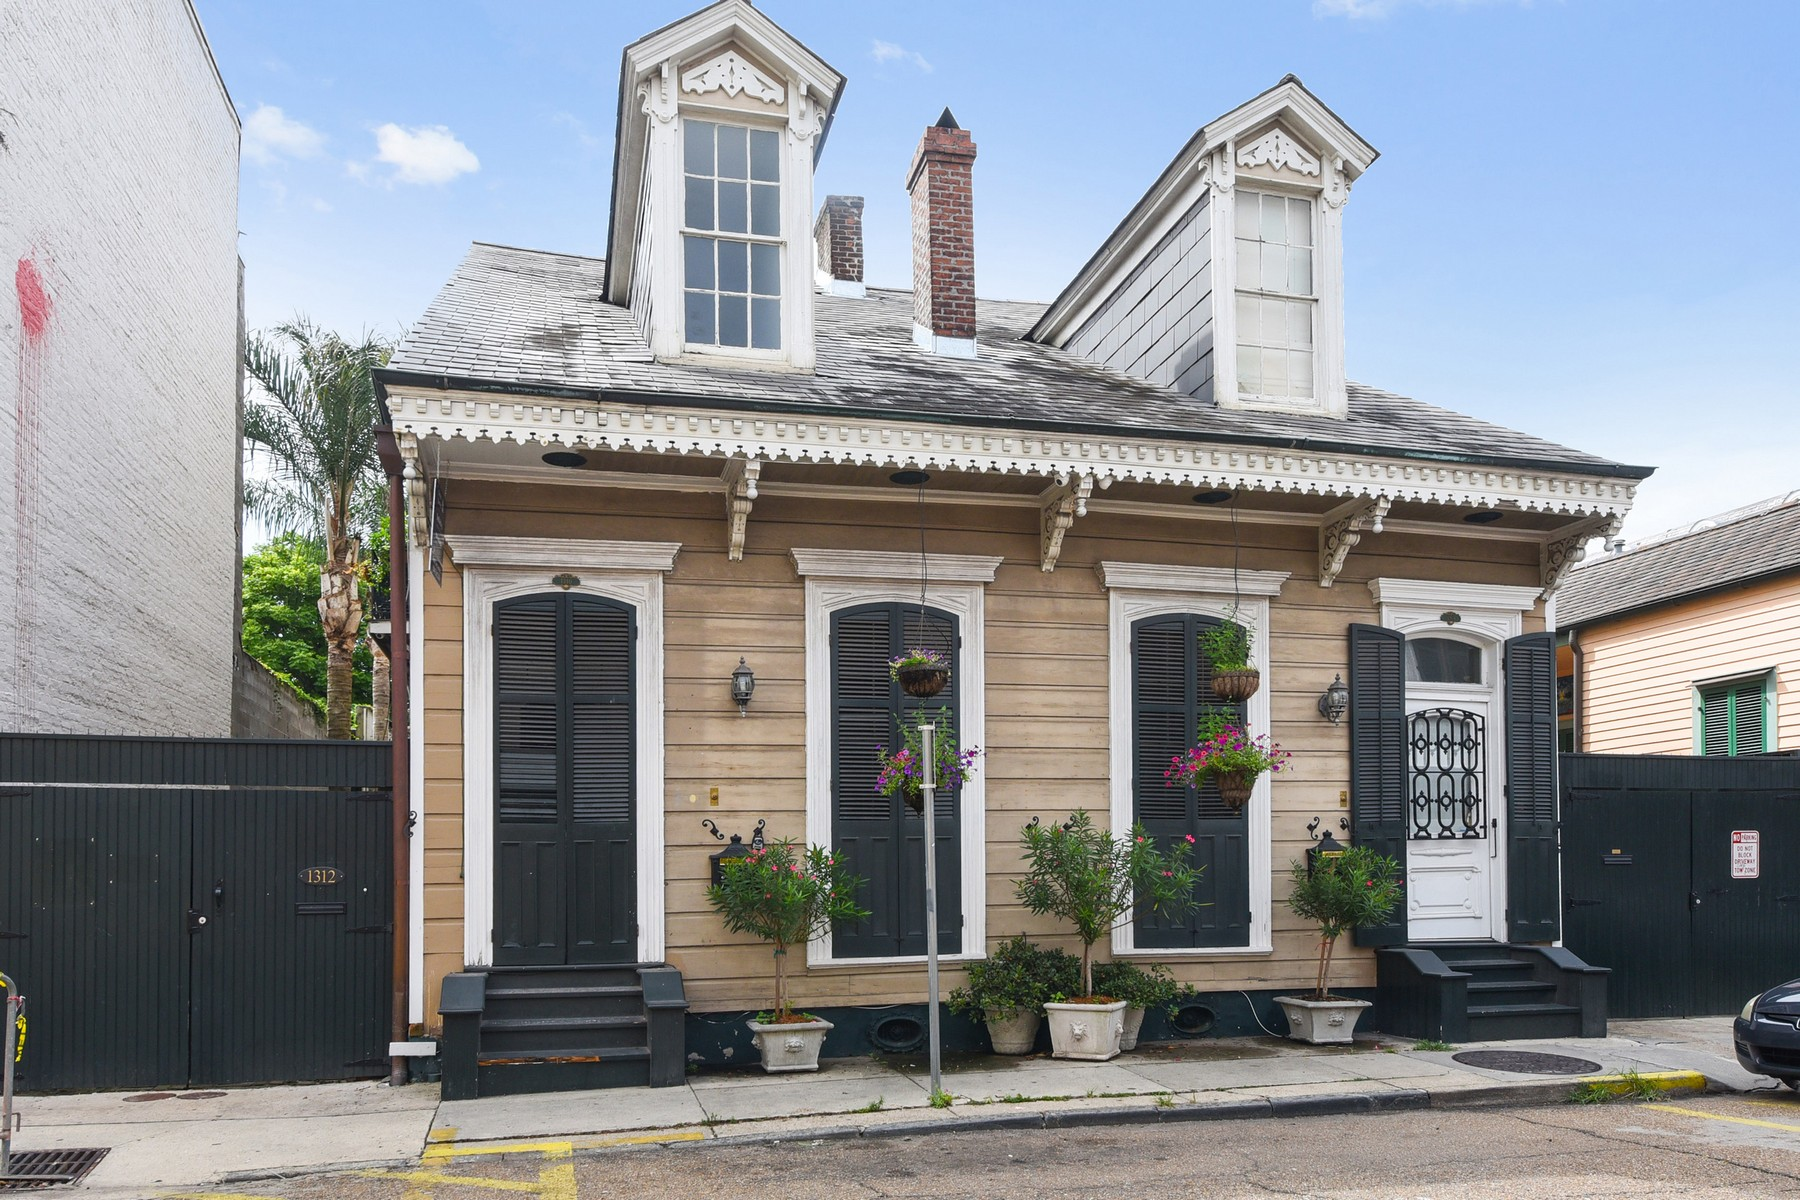 Condominium for Sale at 1312 Chartres Street, New Orleans 1312 Chartres St New Orleans, Louisiana 70116 United States